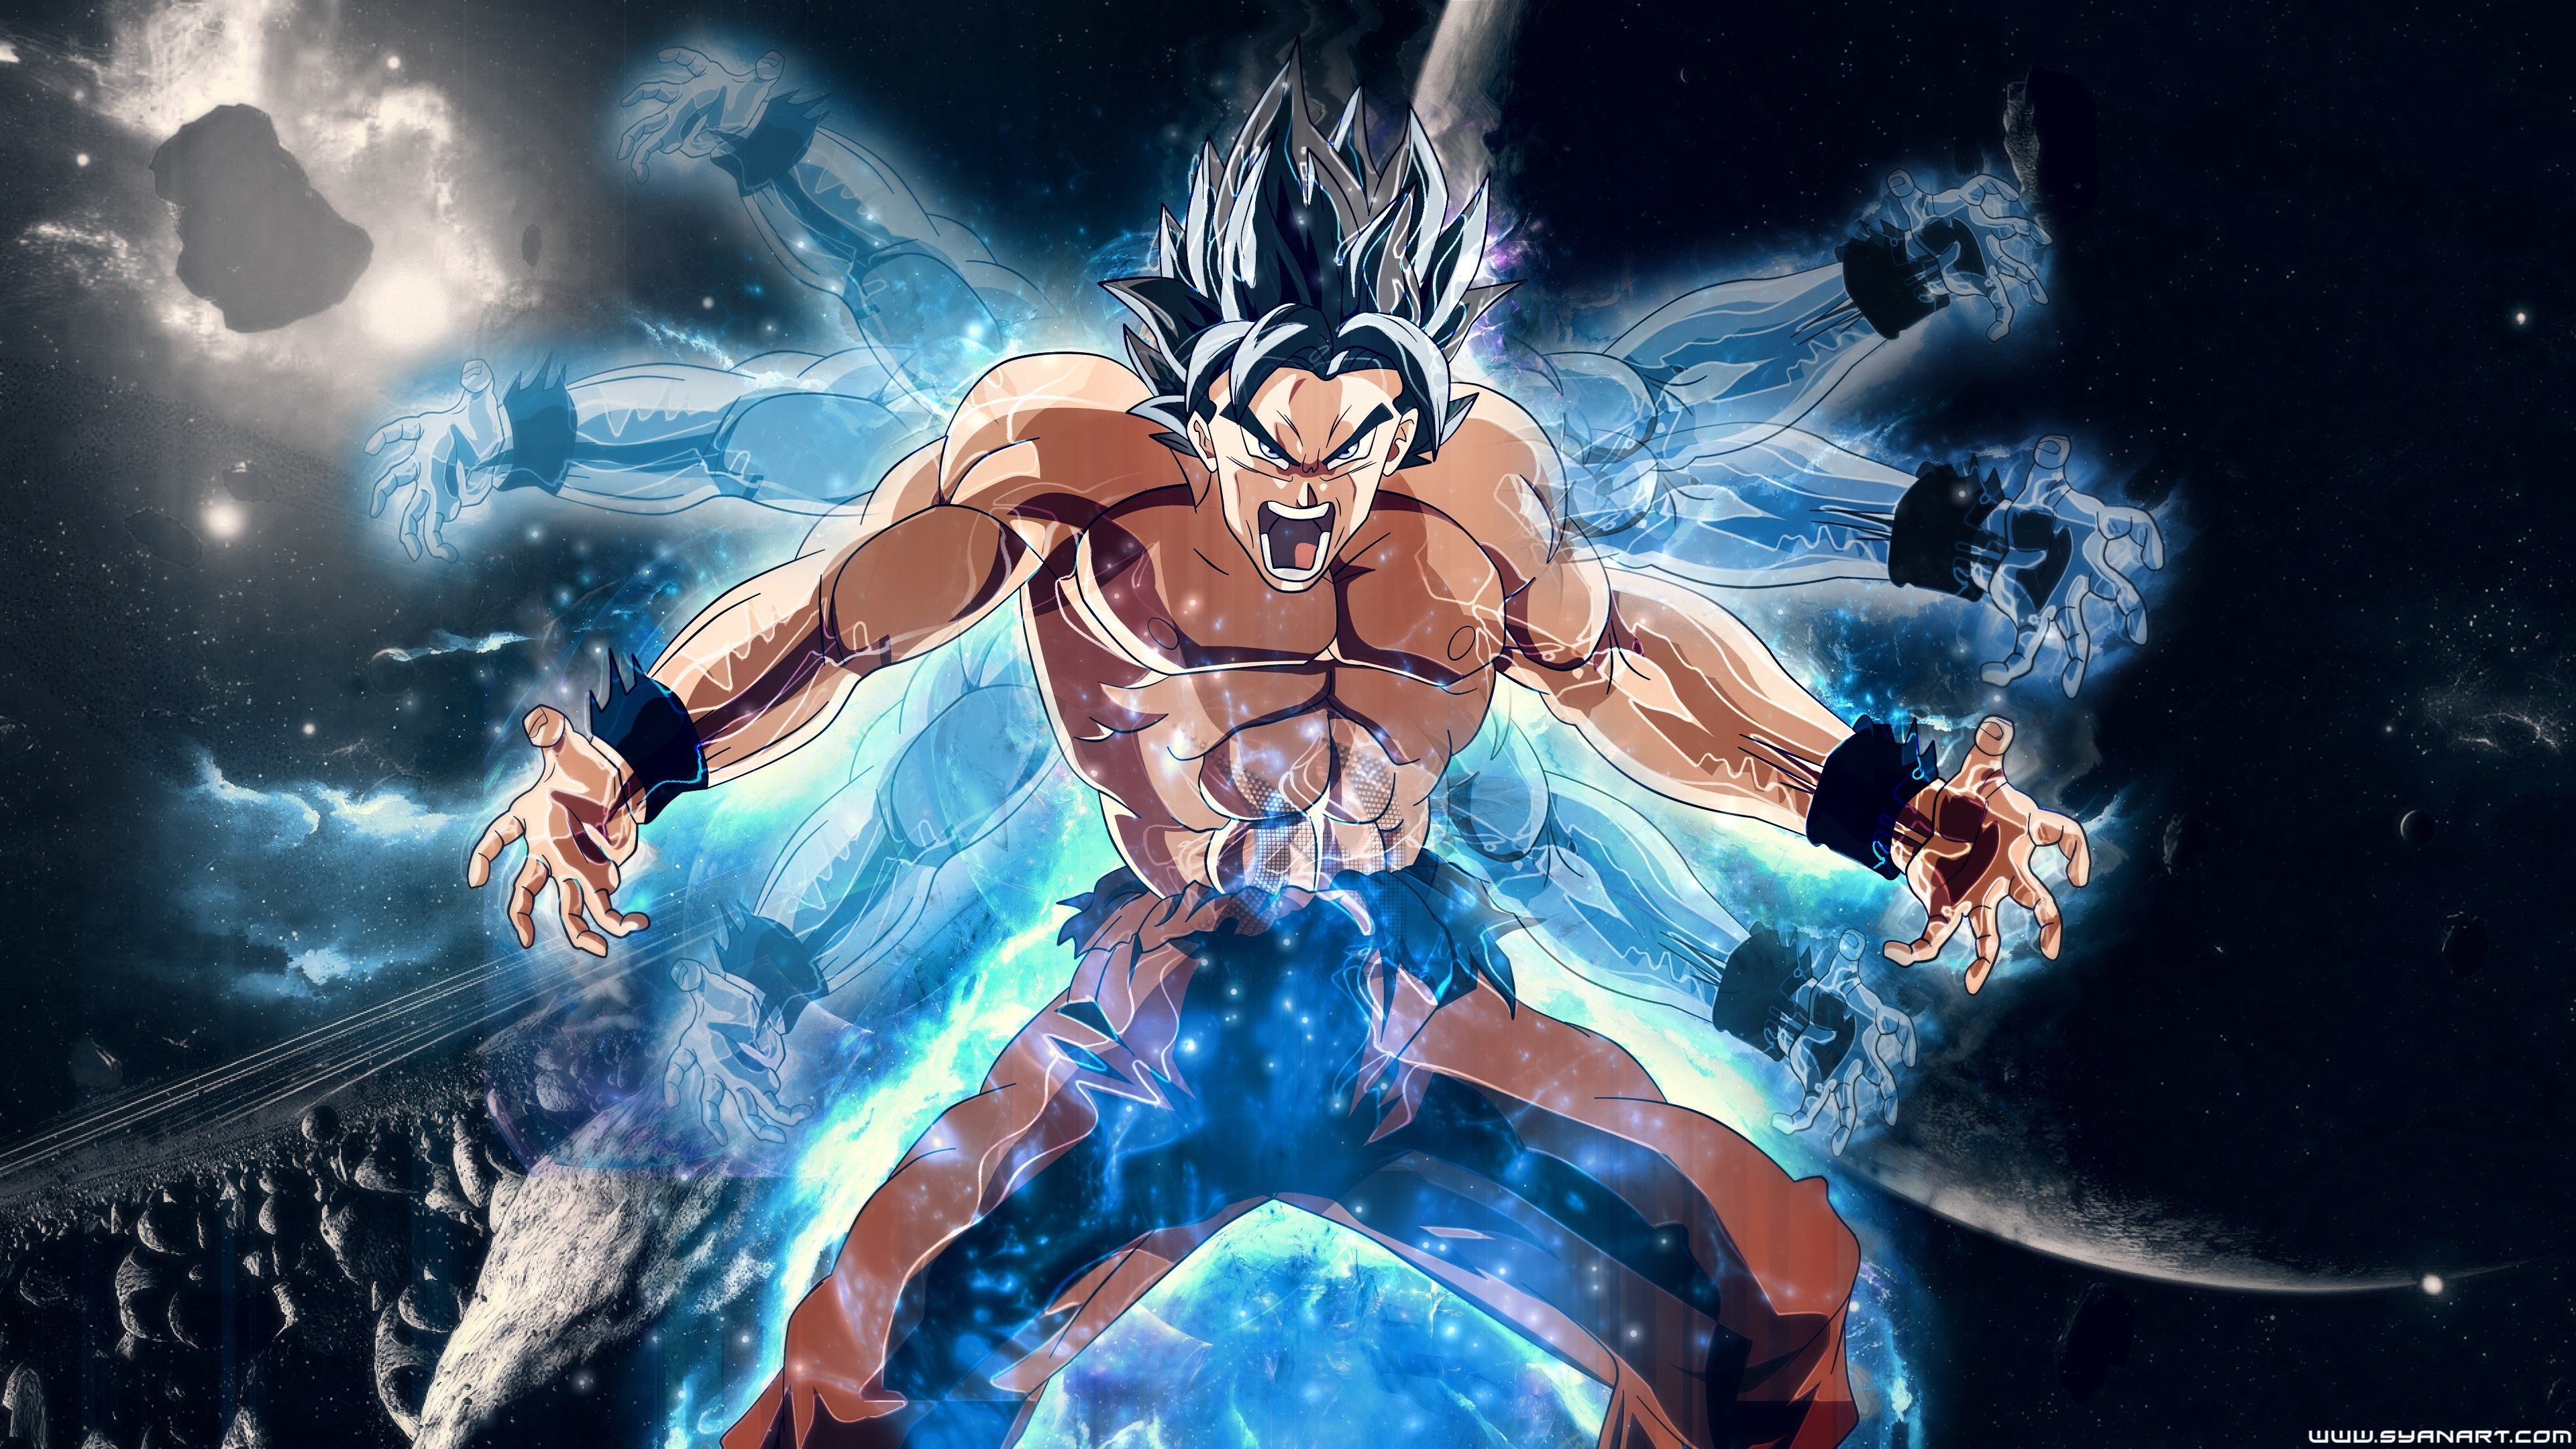 3840x2160 Dragon Ball Super 4k Hd Wallpaper Backgrounds Free Dragon Ball Super Wallpapers Dragon Ball Wallpapers Dragon Ball Super Goku